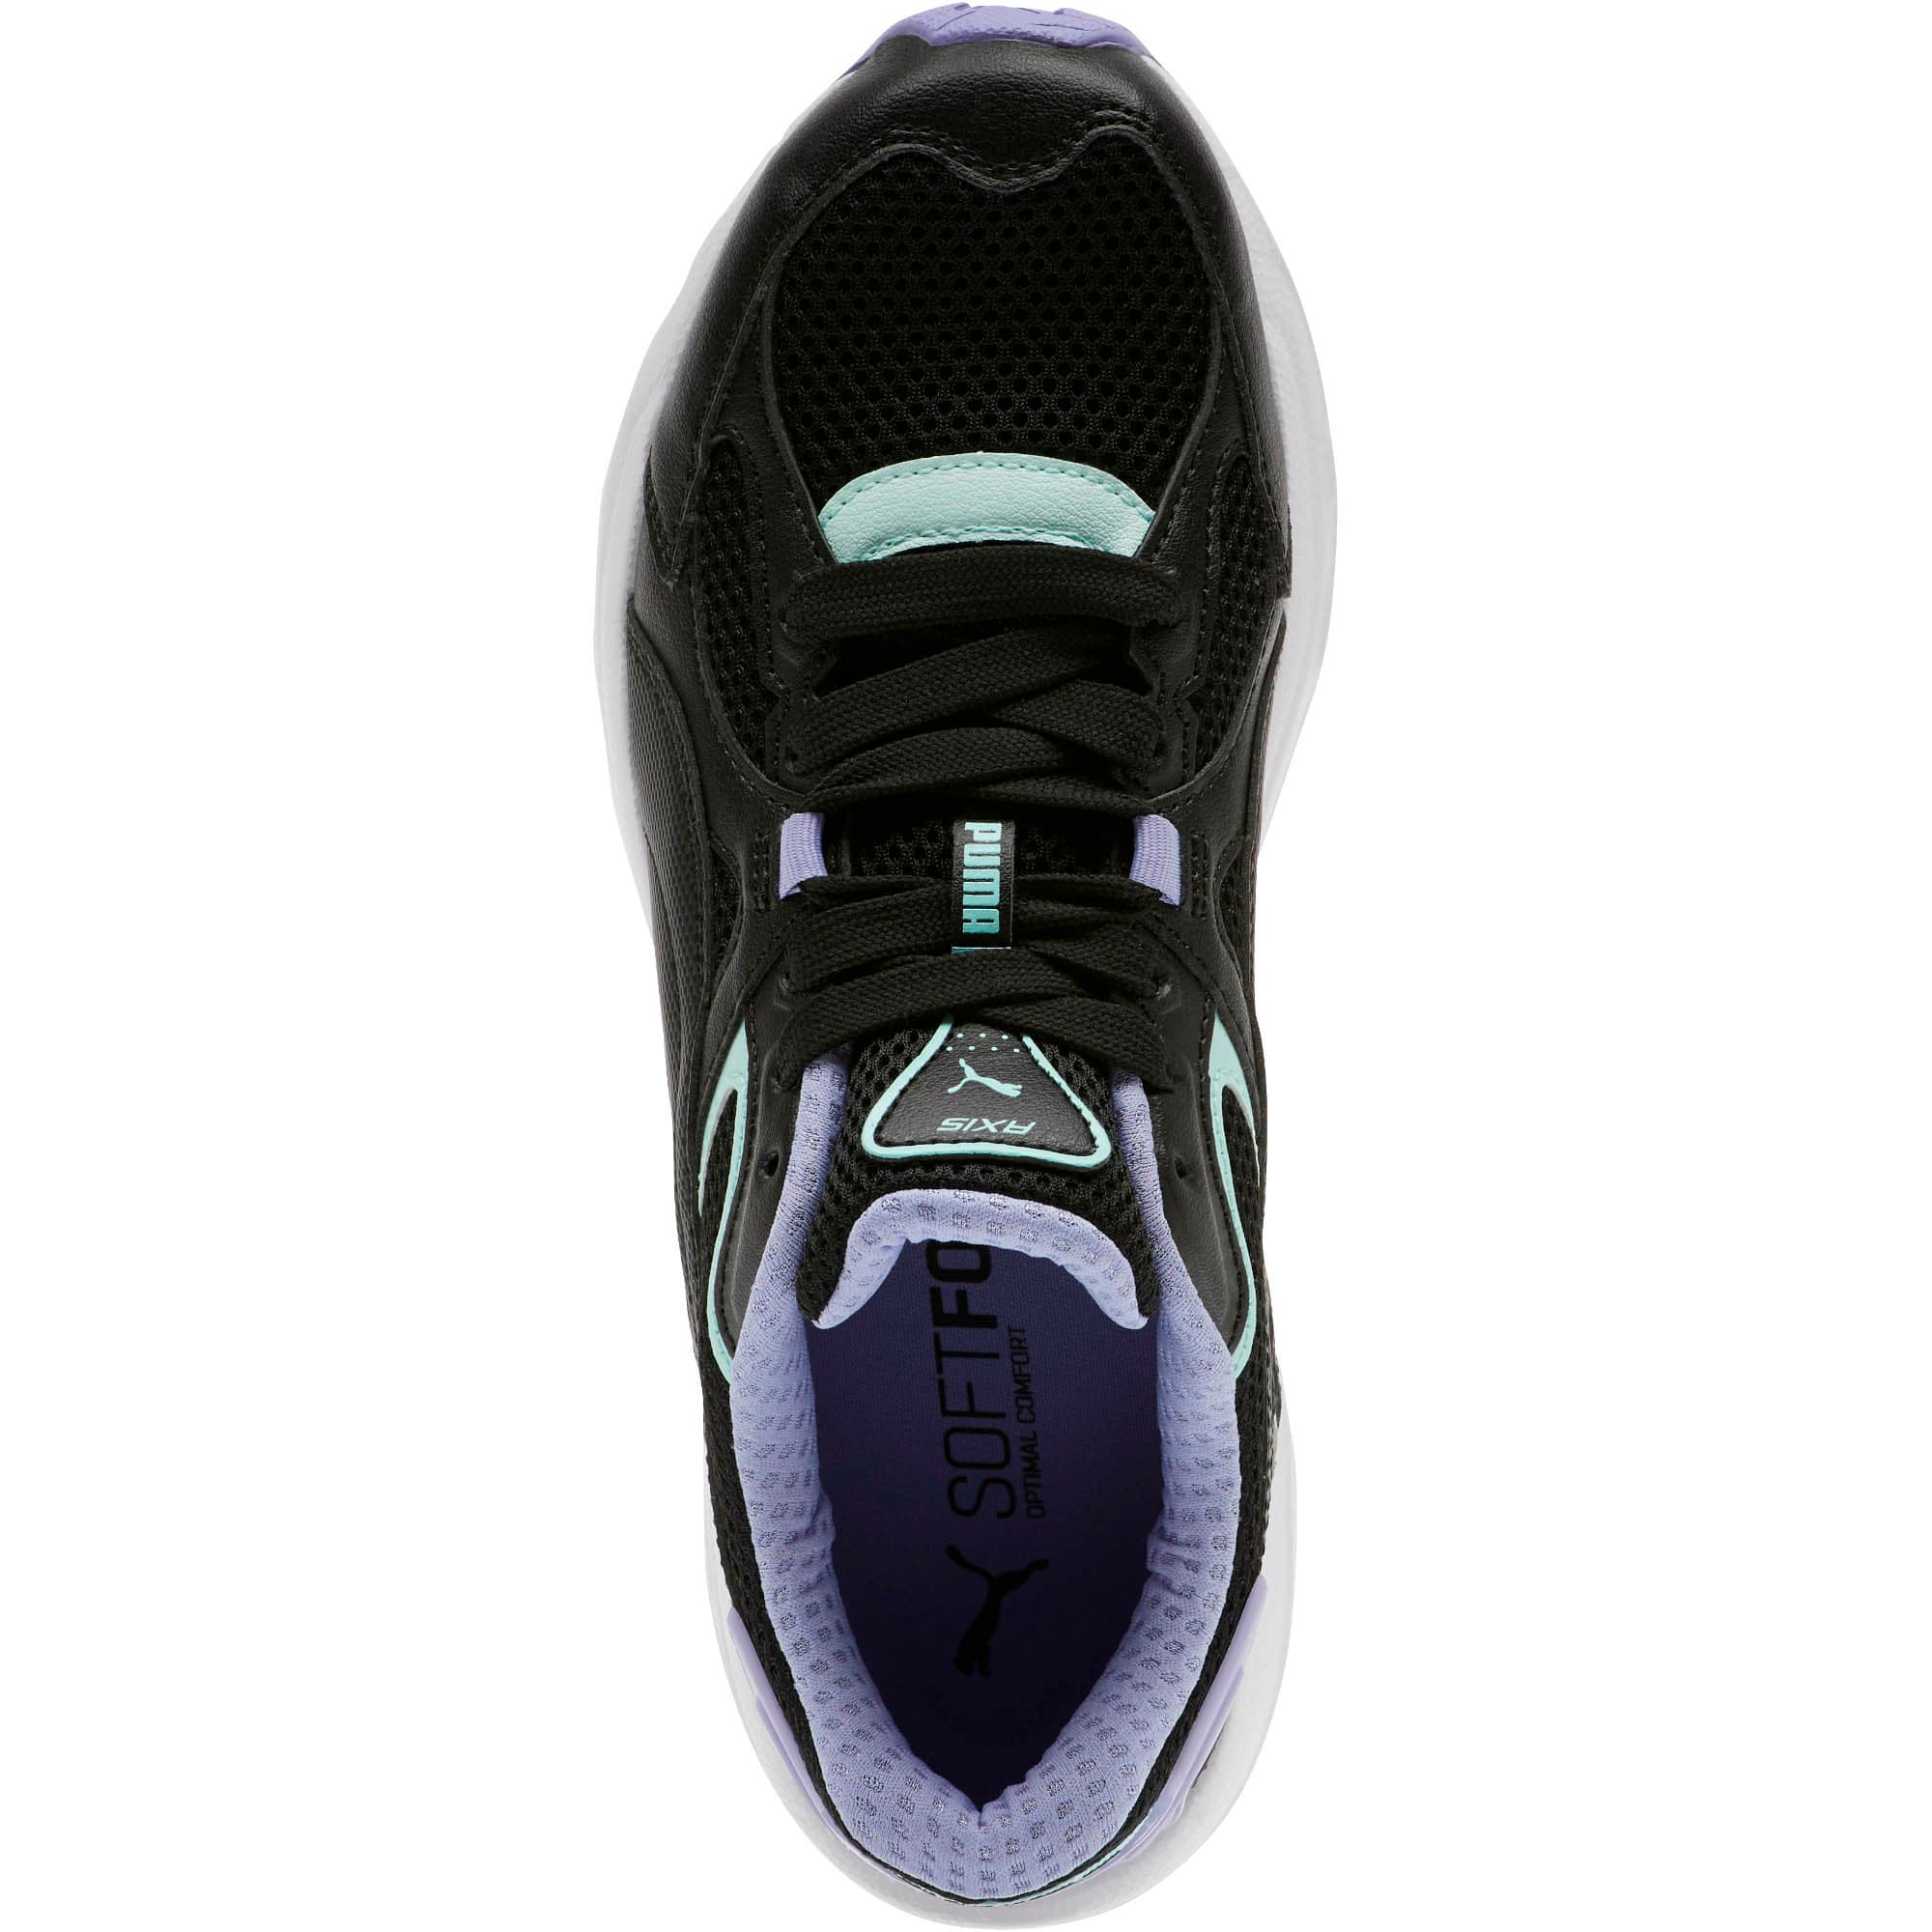 Thumbnail 5 of Axis Plus 90s Women's Sneakers, Black-F Aqua-S Lavender-Wht, medium